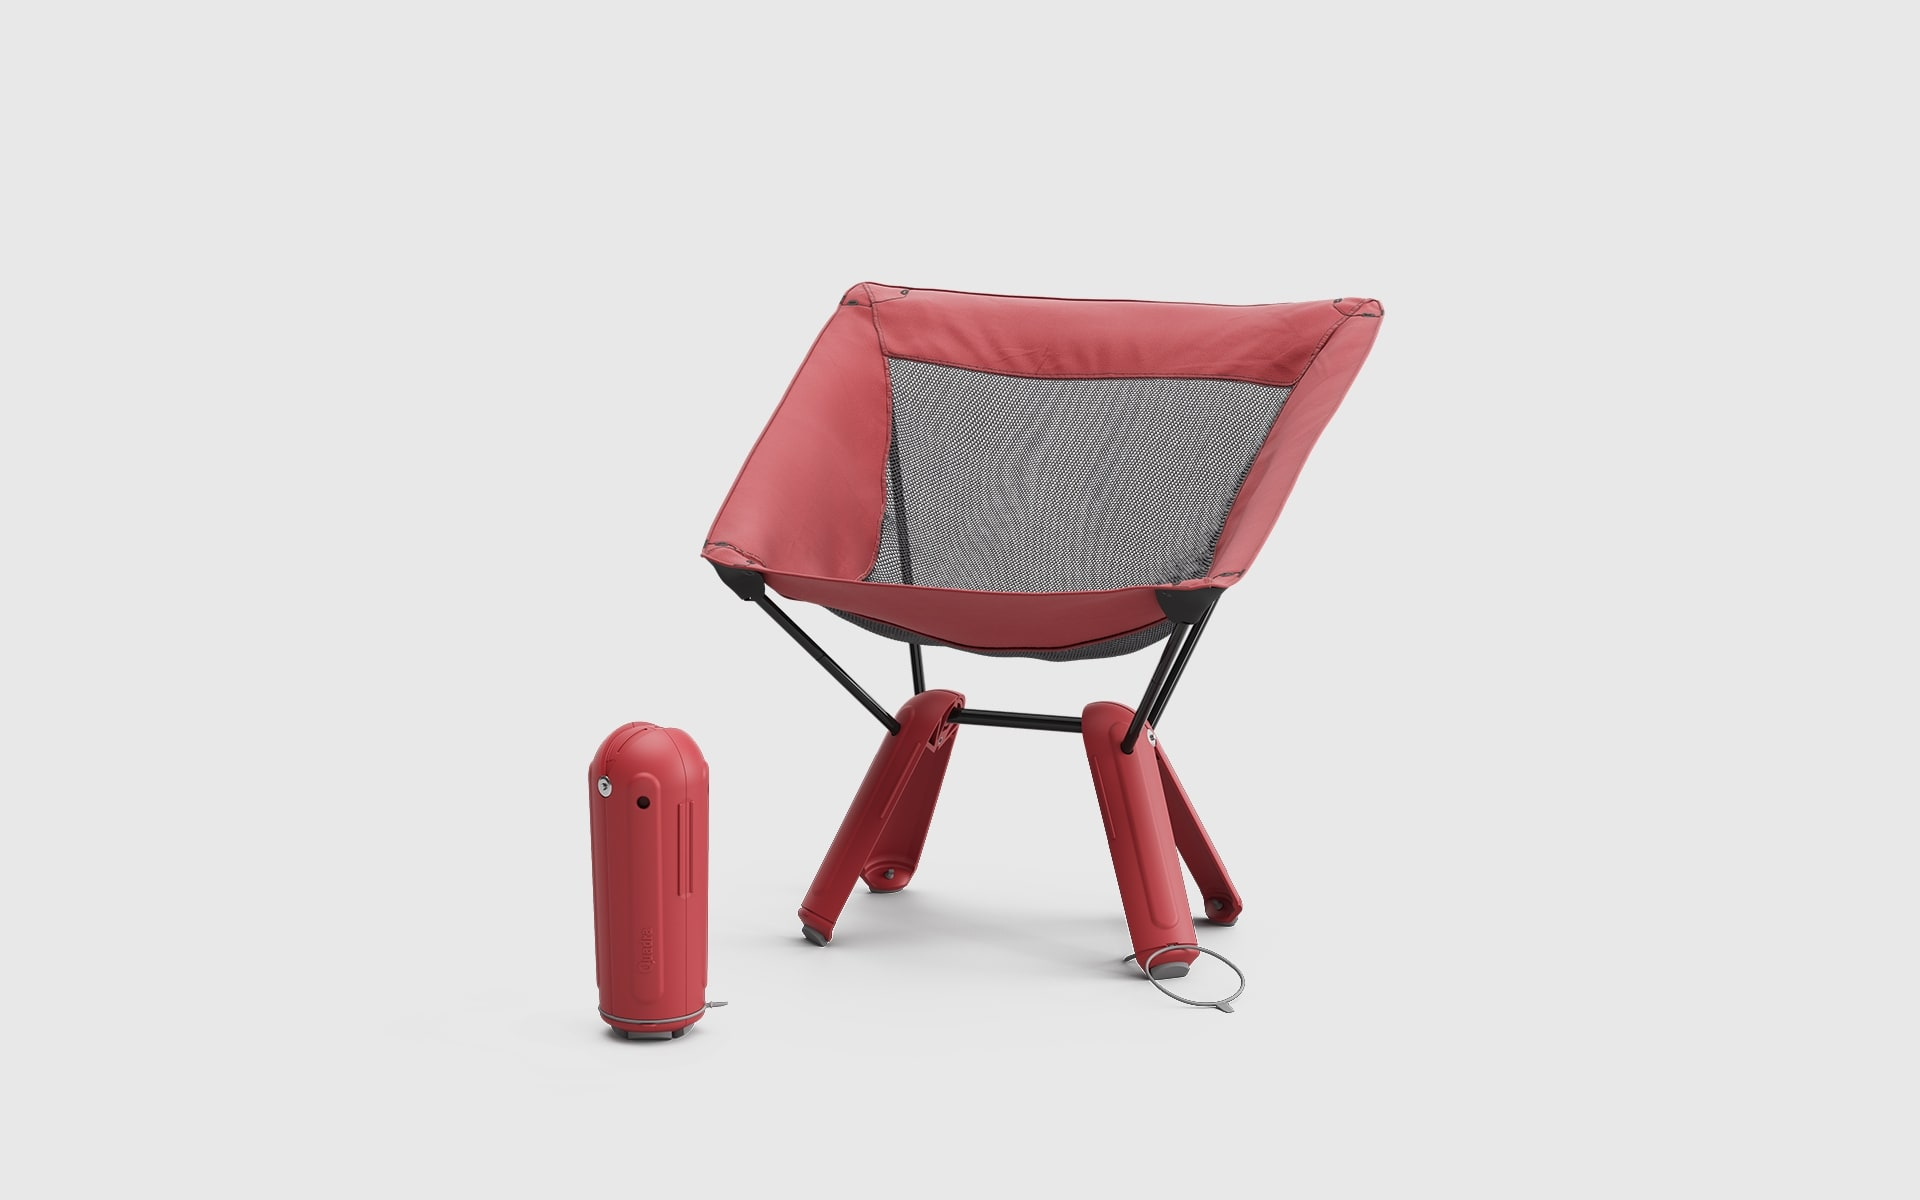 Red Therm-a-Rest Quadra camp chair by ITO Design, next to it a second Quadra camp chair packed into its own base